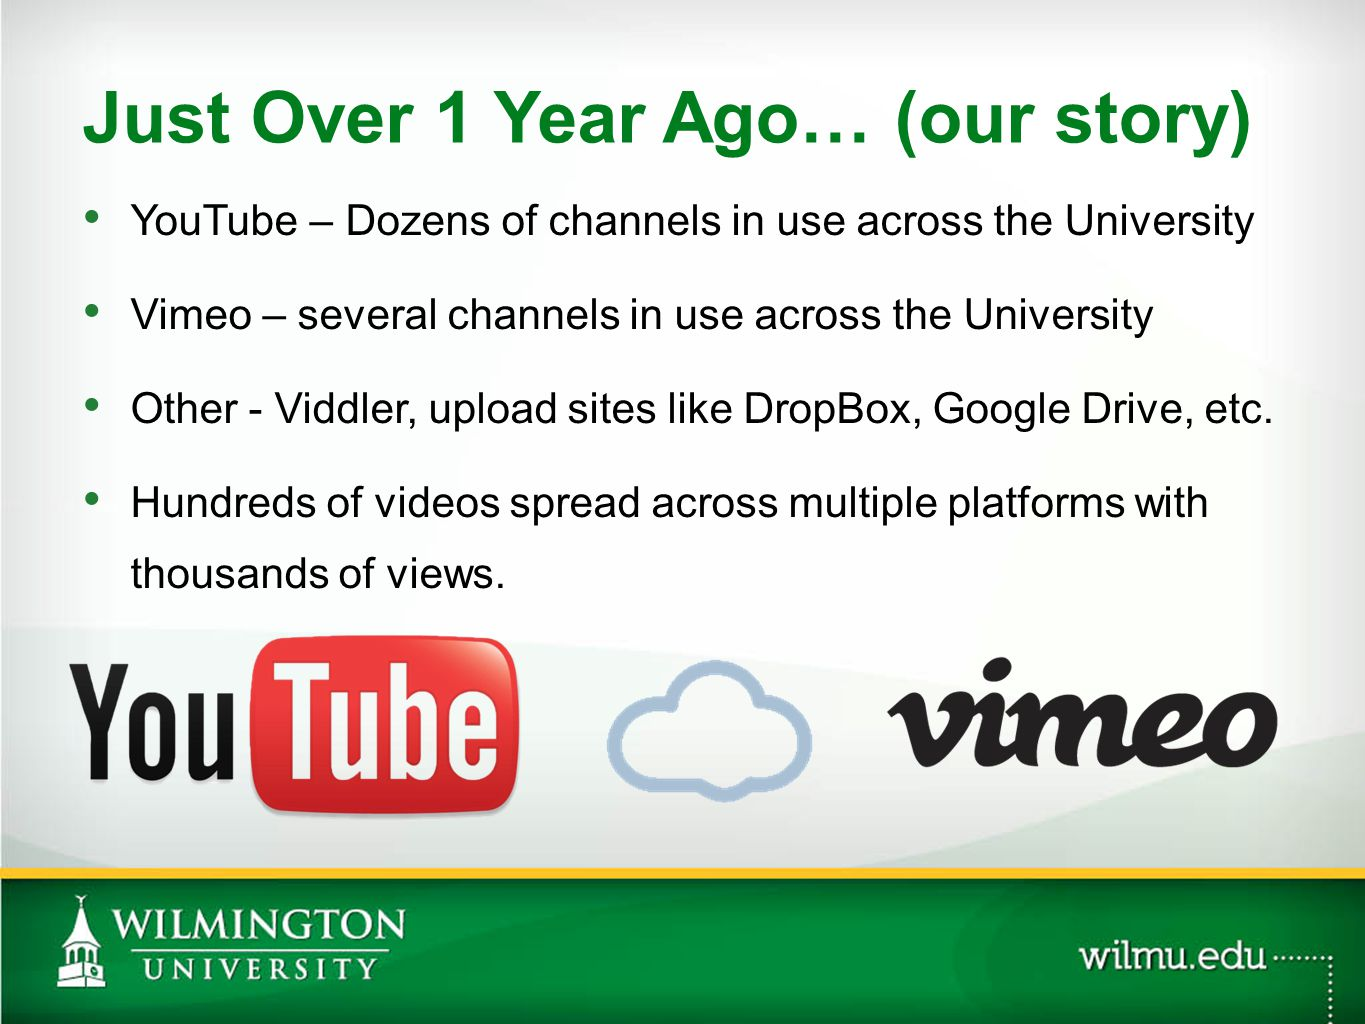 YouTube – Dozens of channels in use across the University Vimeo – several channels in use across the University Other - Viddler, upload sites like DropBox, Google Drive, etc.